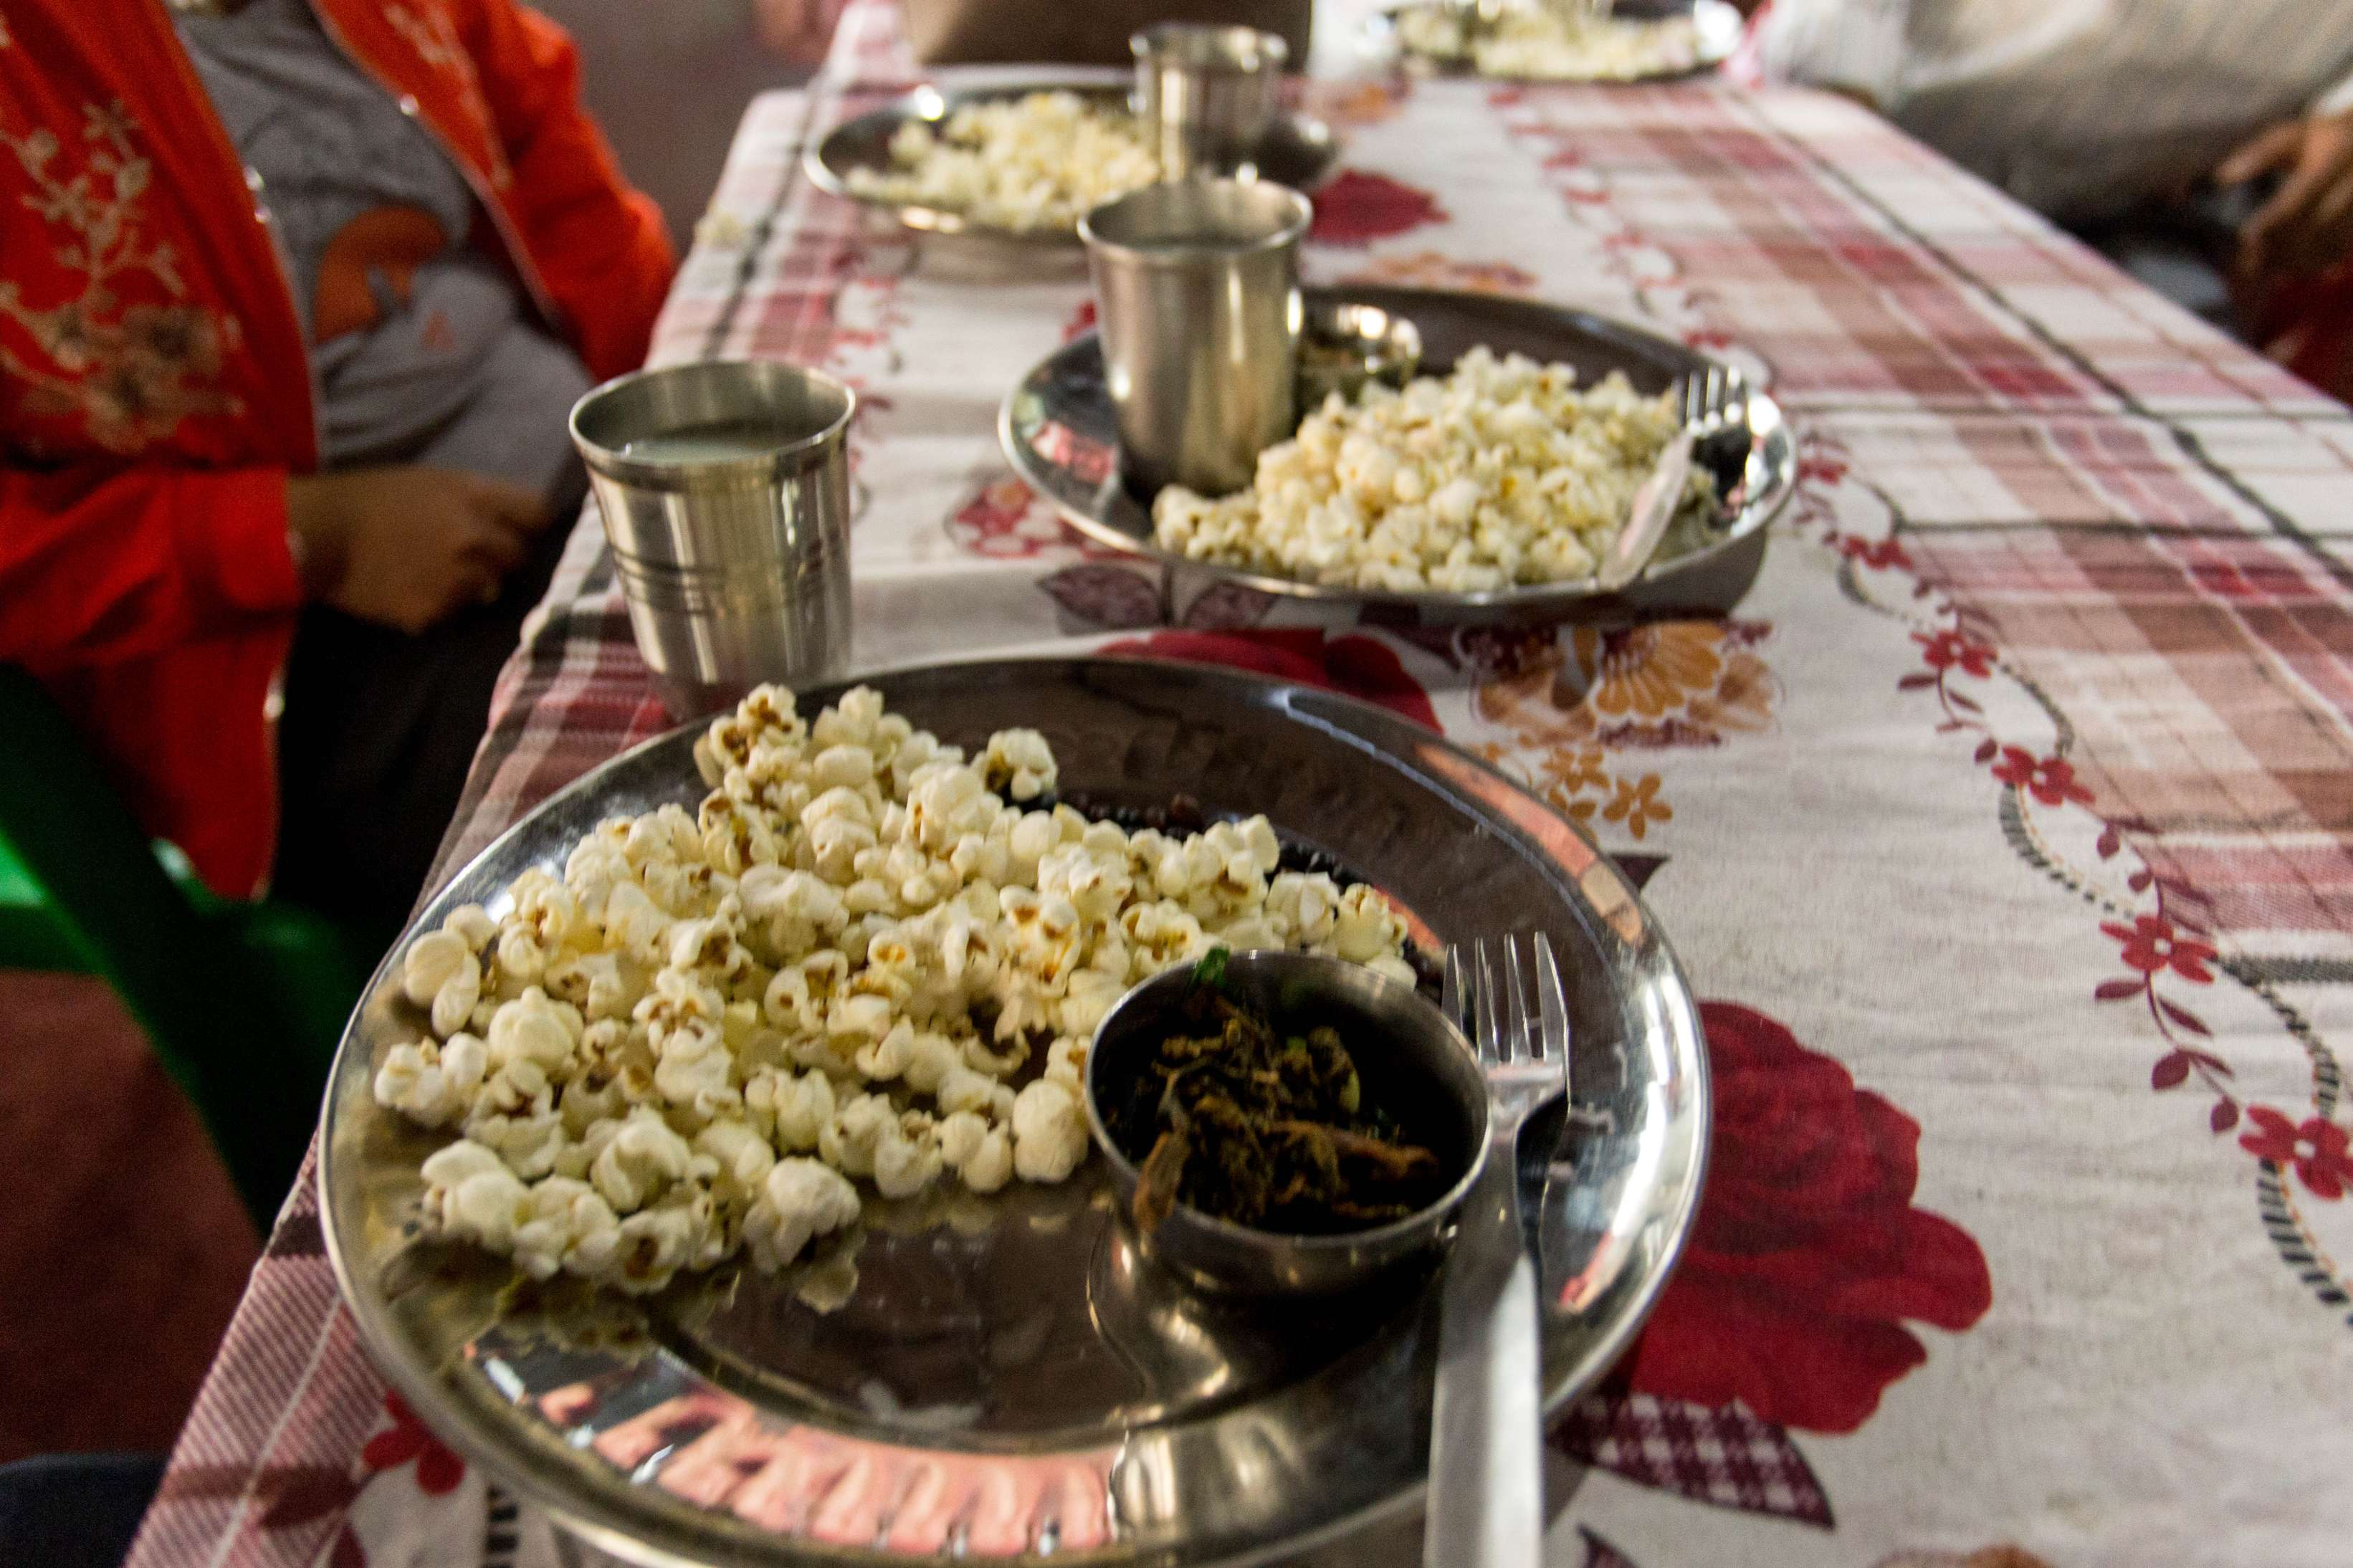 Popcorn with Gundruk and Tea, a common snacks in the villages